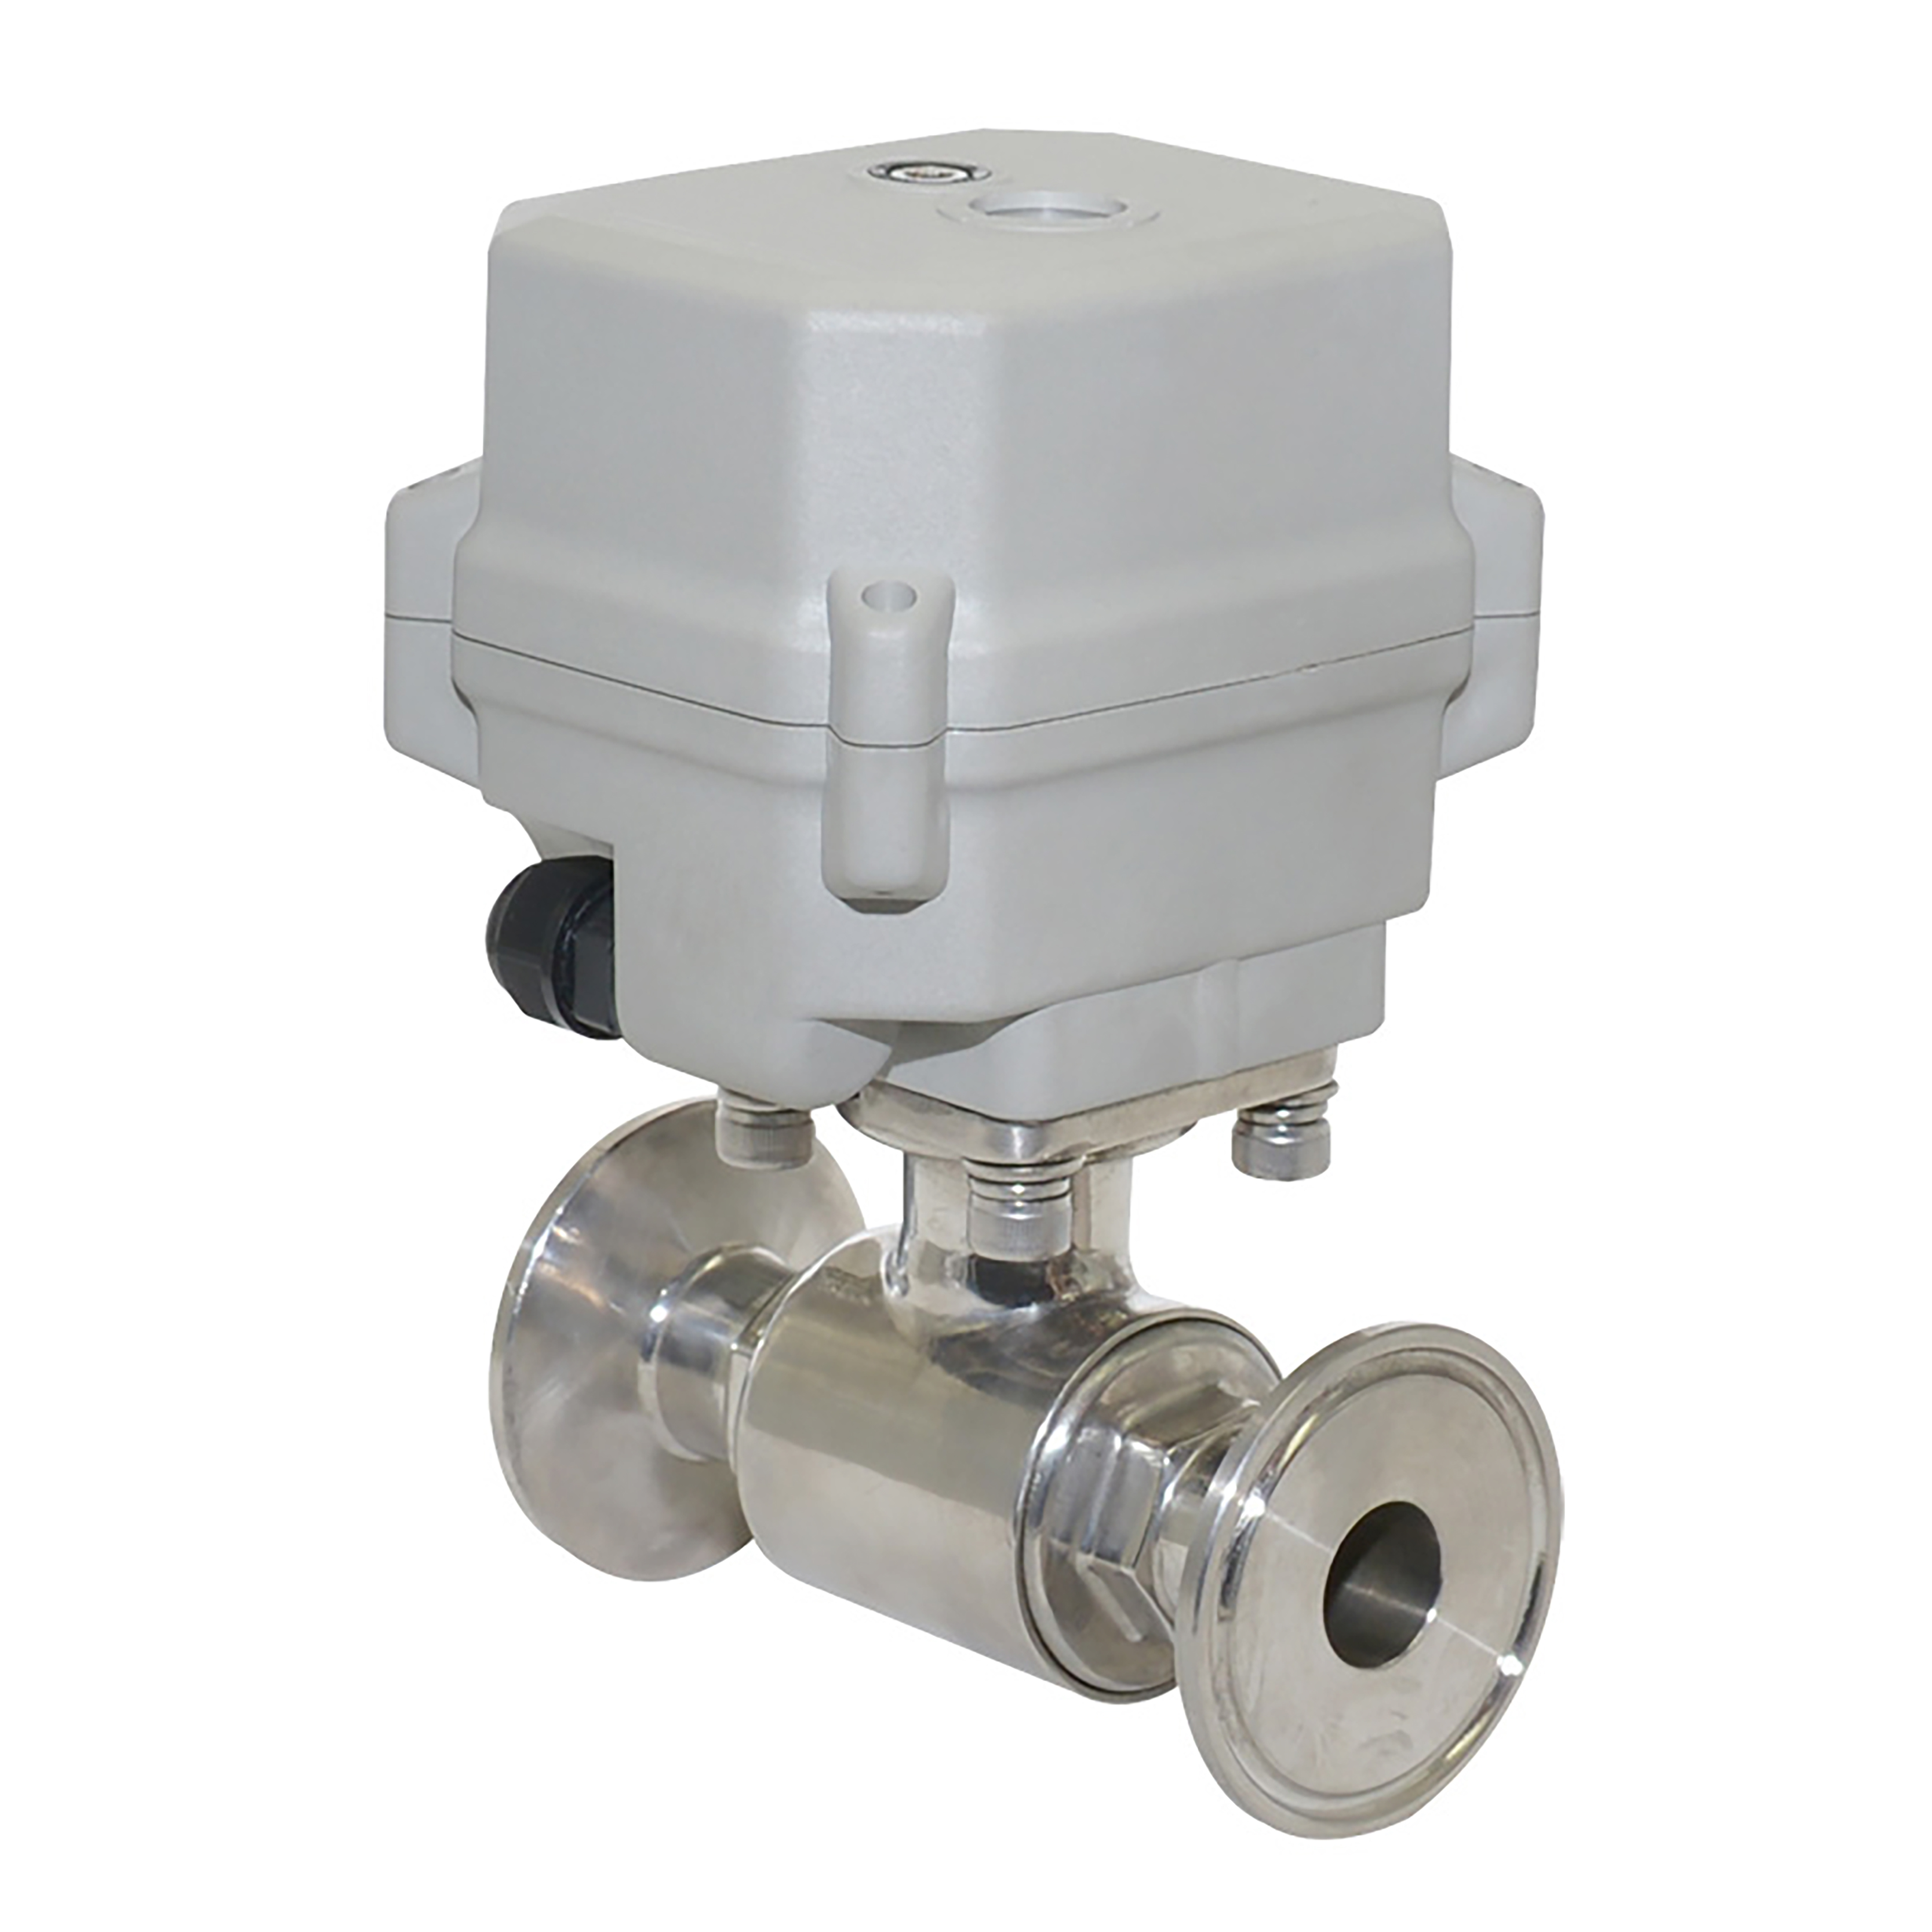 2-Way Stainless Steel Tri-Clamp Ball Valve With Electric Actuator